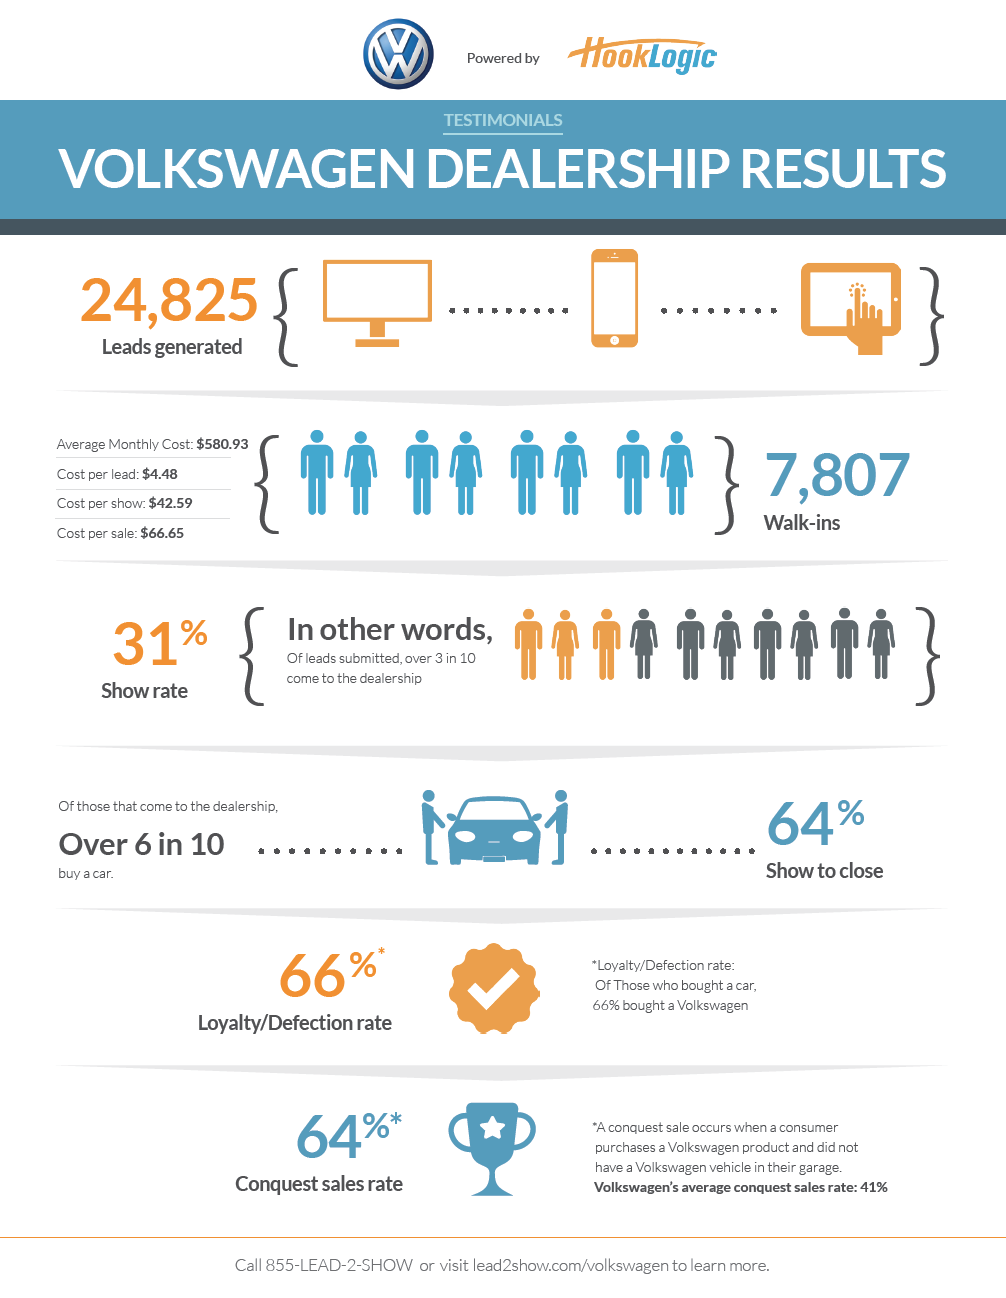 Volkswagen 2014 hooklogic performance